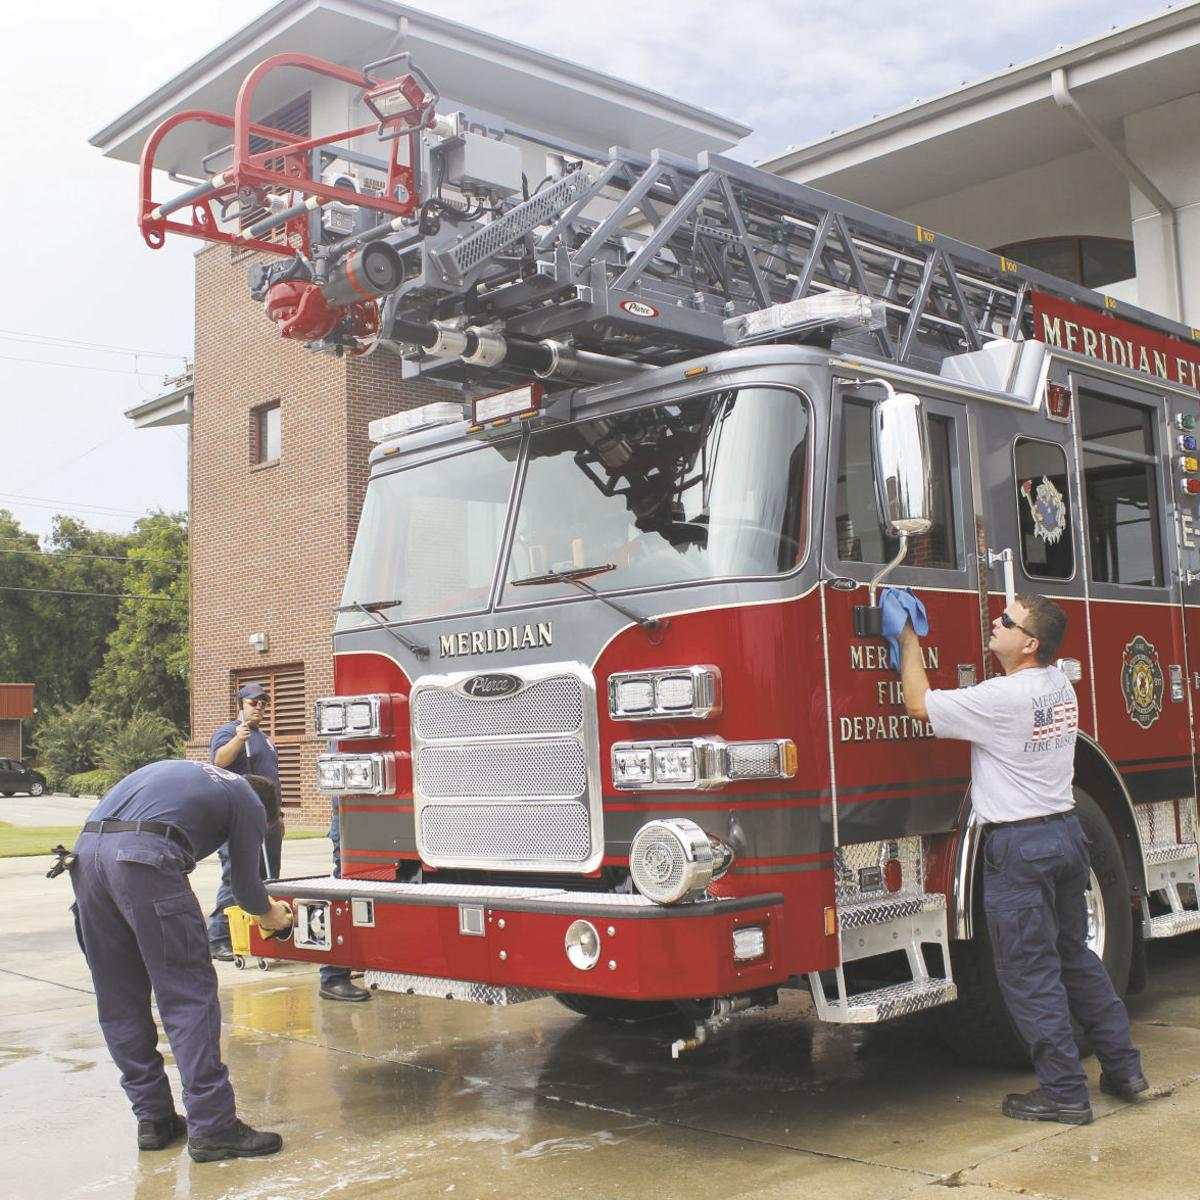 New dual-purpose fire apparatus arrives in Meridian | Local News